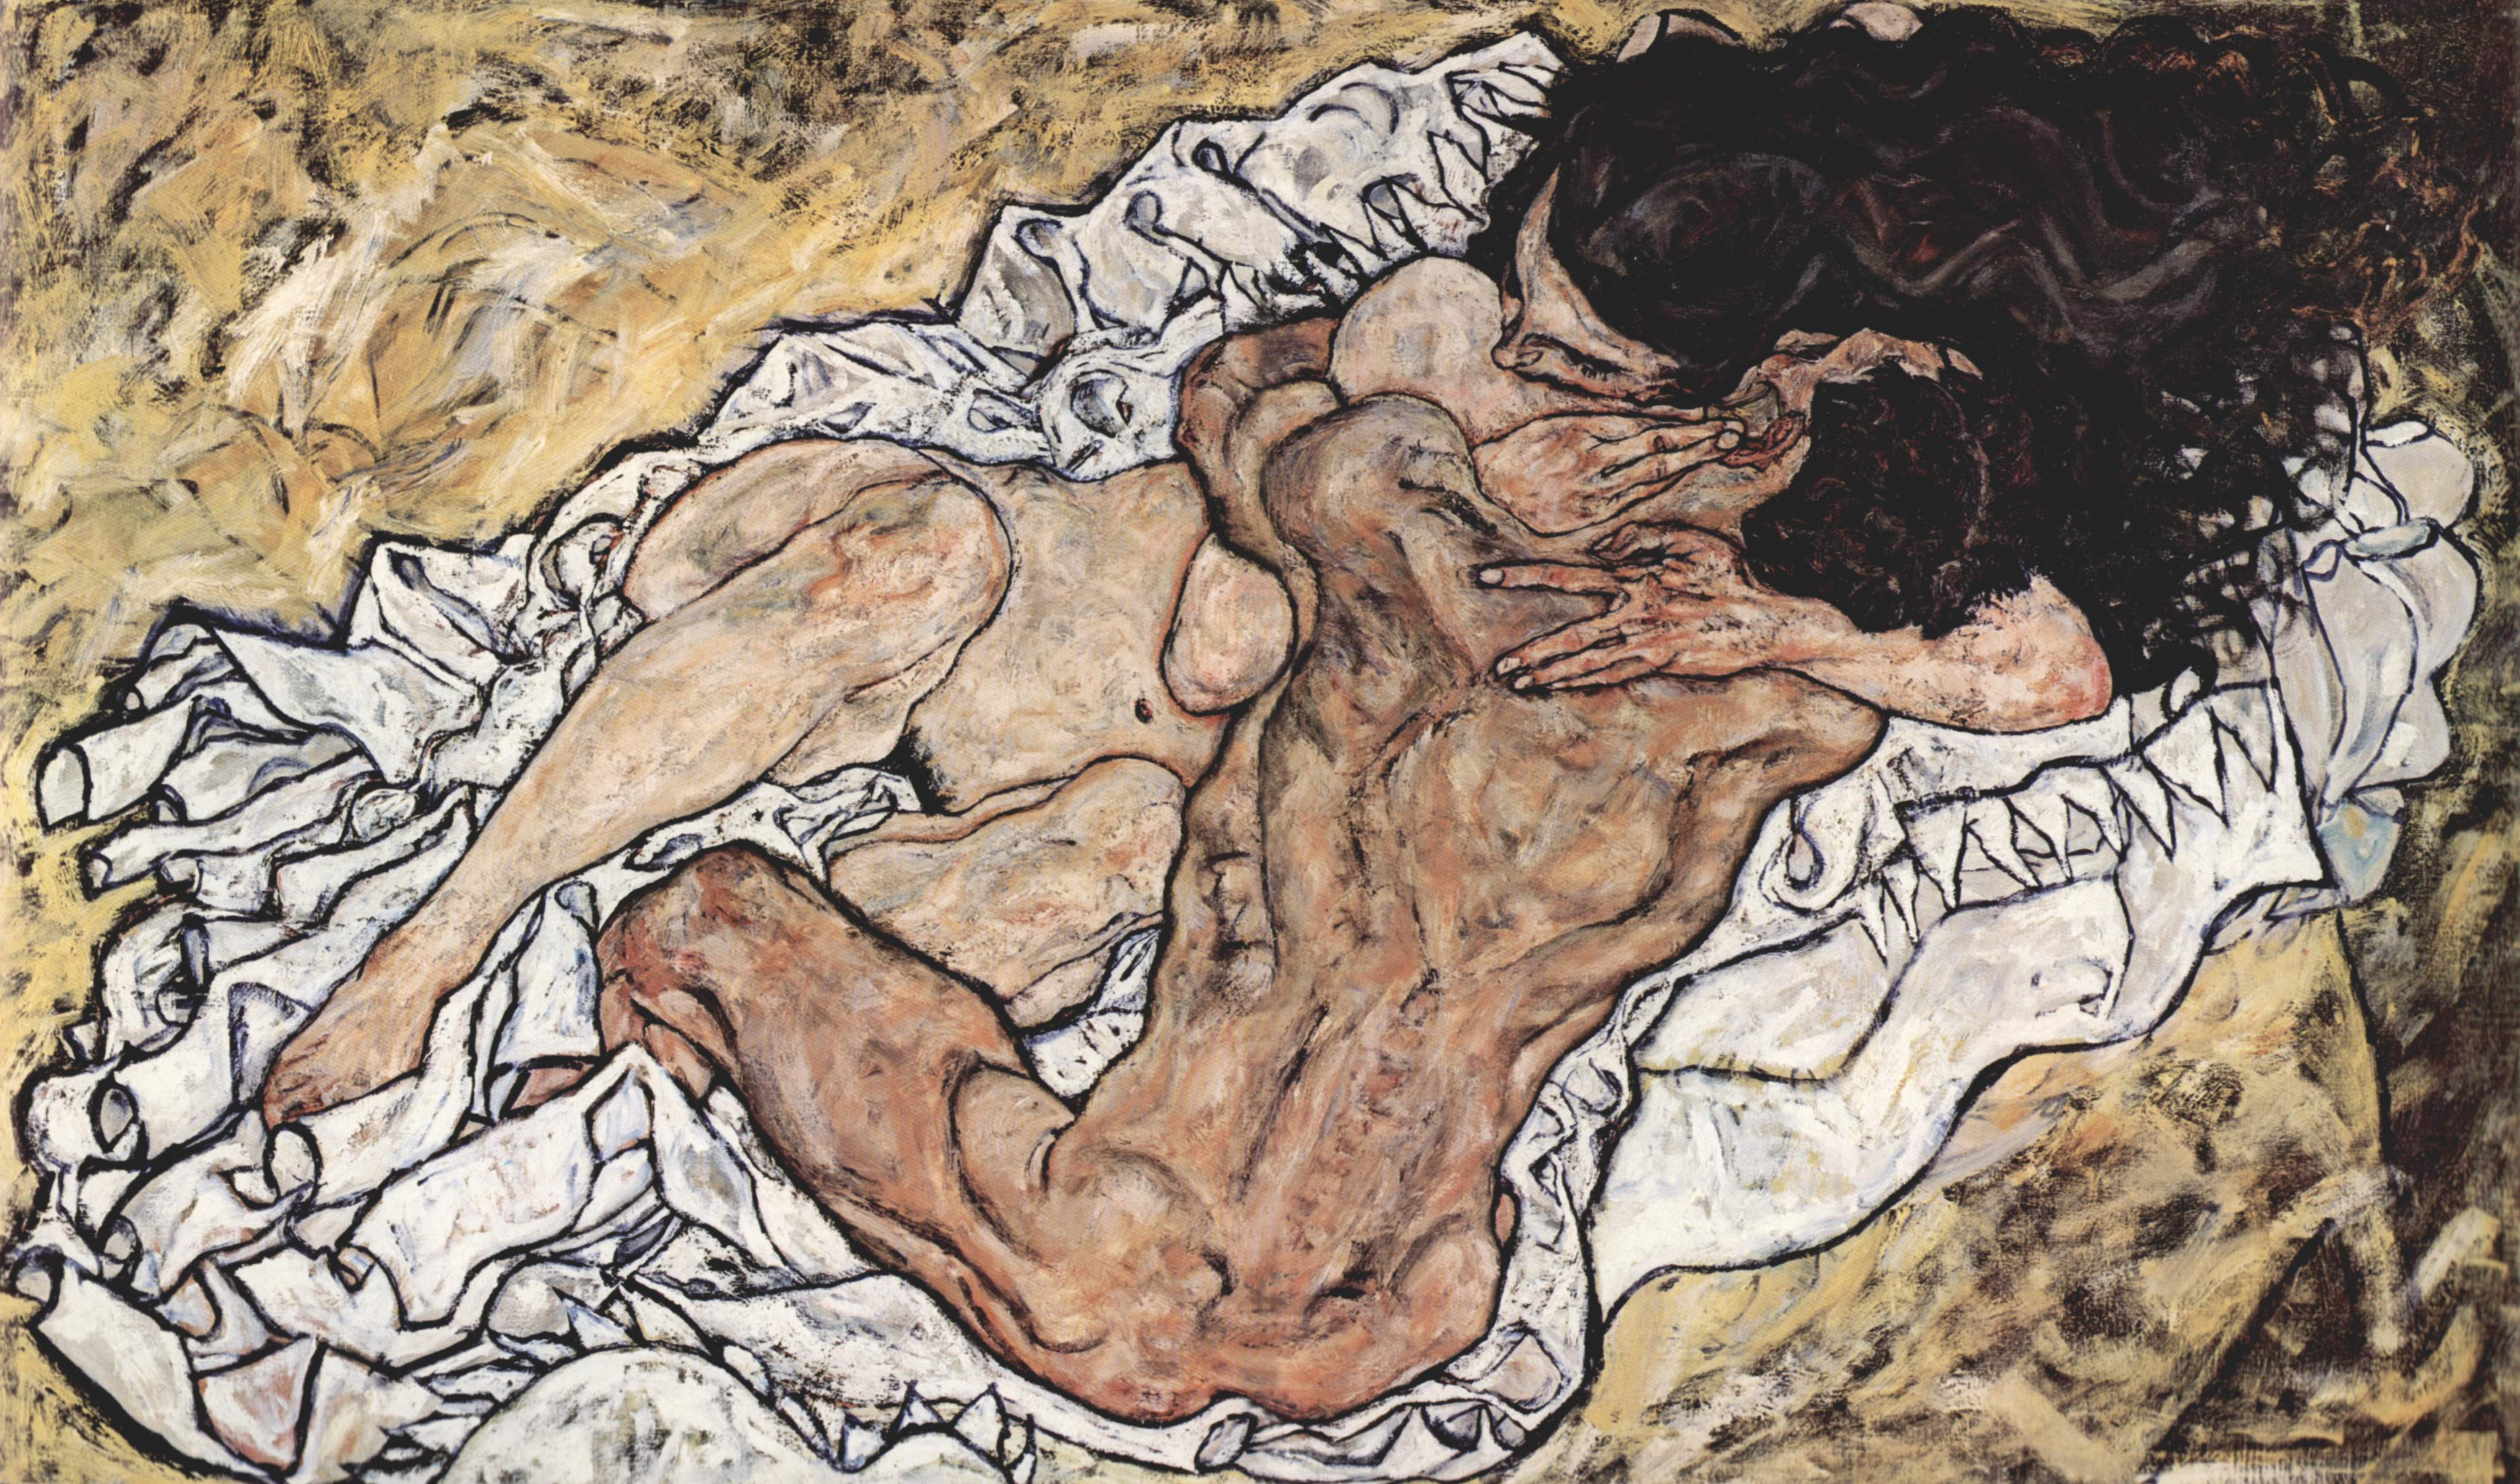 https://i2.wp.com/upload.wikimedia.org/wikipedia/commons/4/46/Egon_Schiele_016.jpg